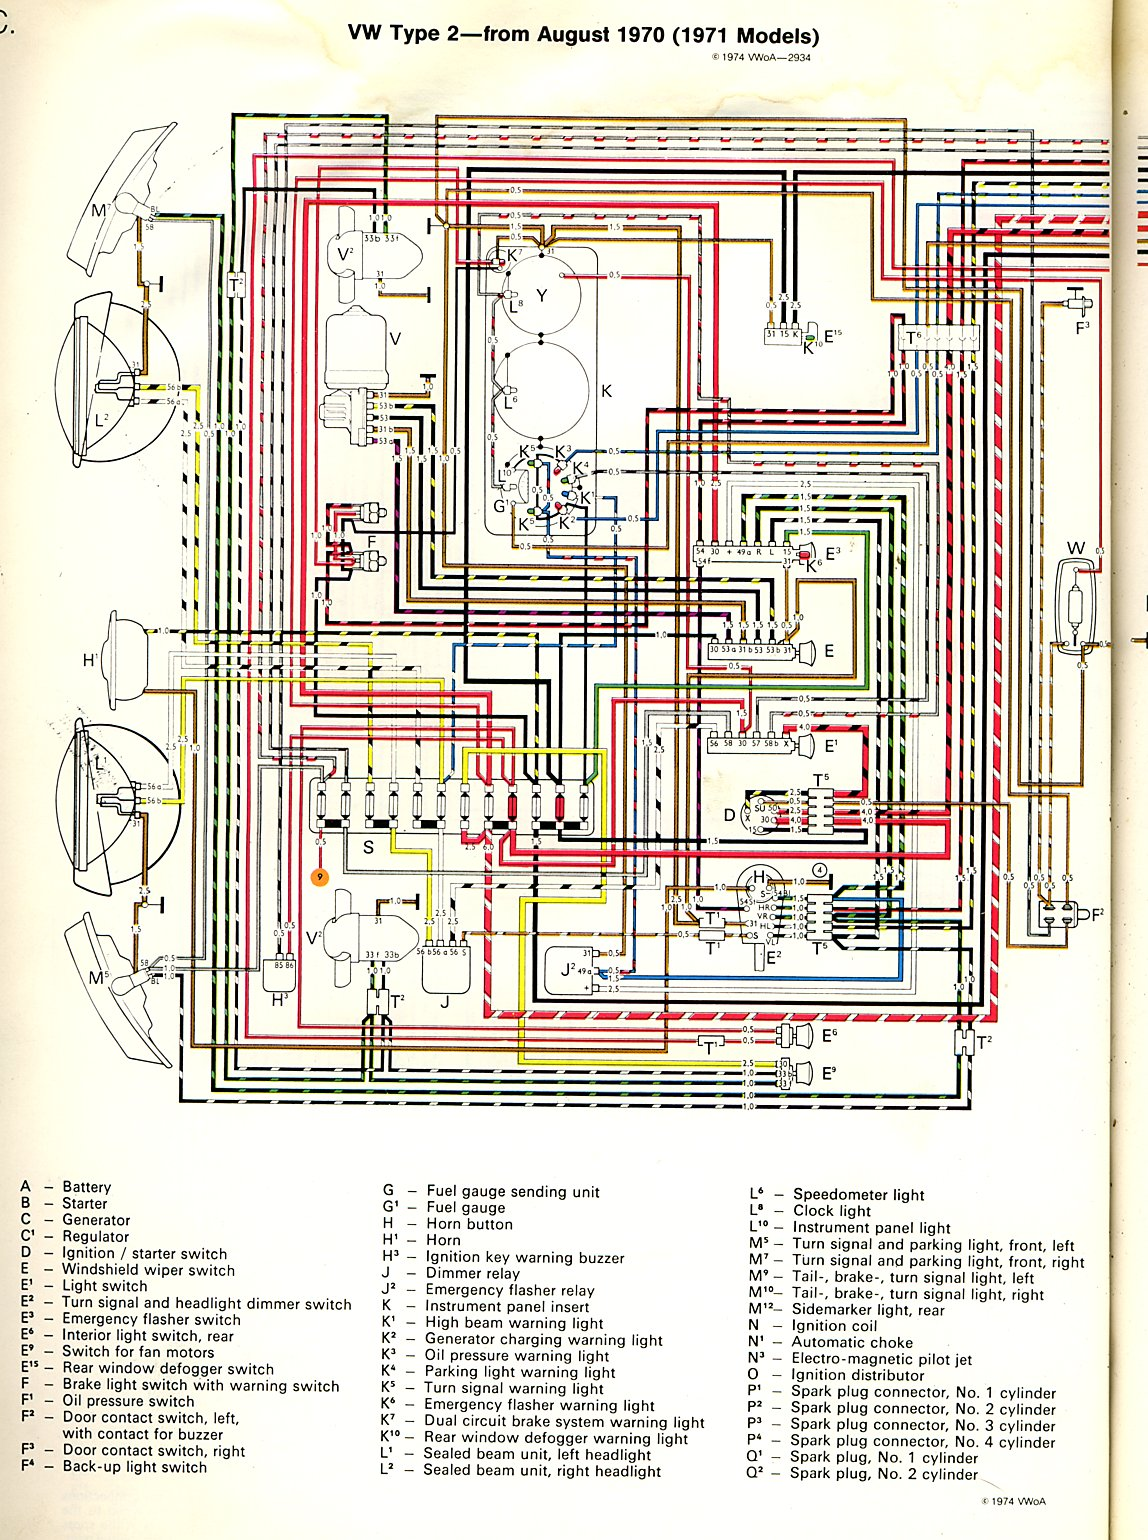 74 Volkswagen Wiring Diagram Library Vr6 Temp Switch Location Get Free Image About Thesamba Com Type 2 Diagrams Rh 68 Continental 1974 Vw